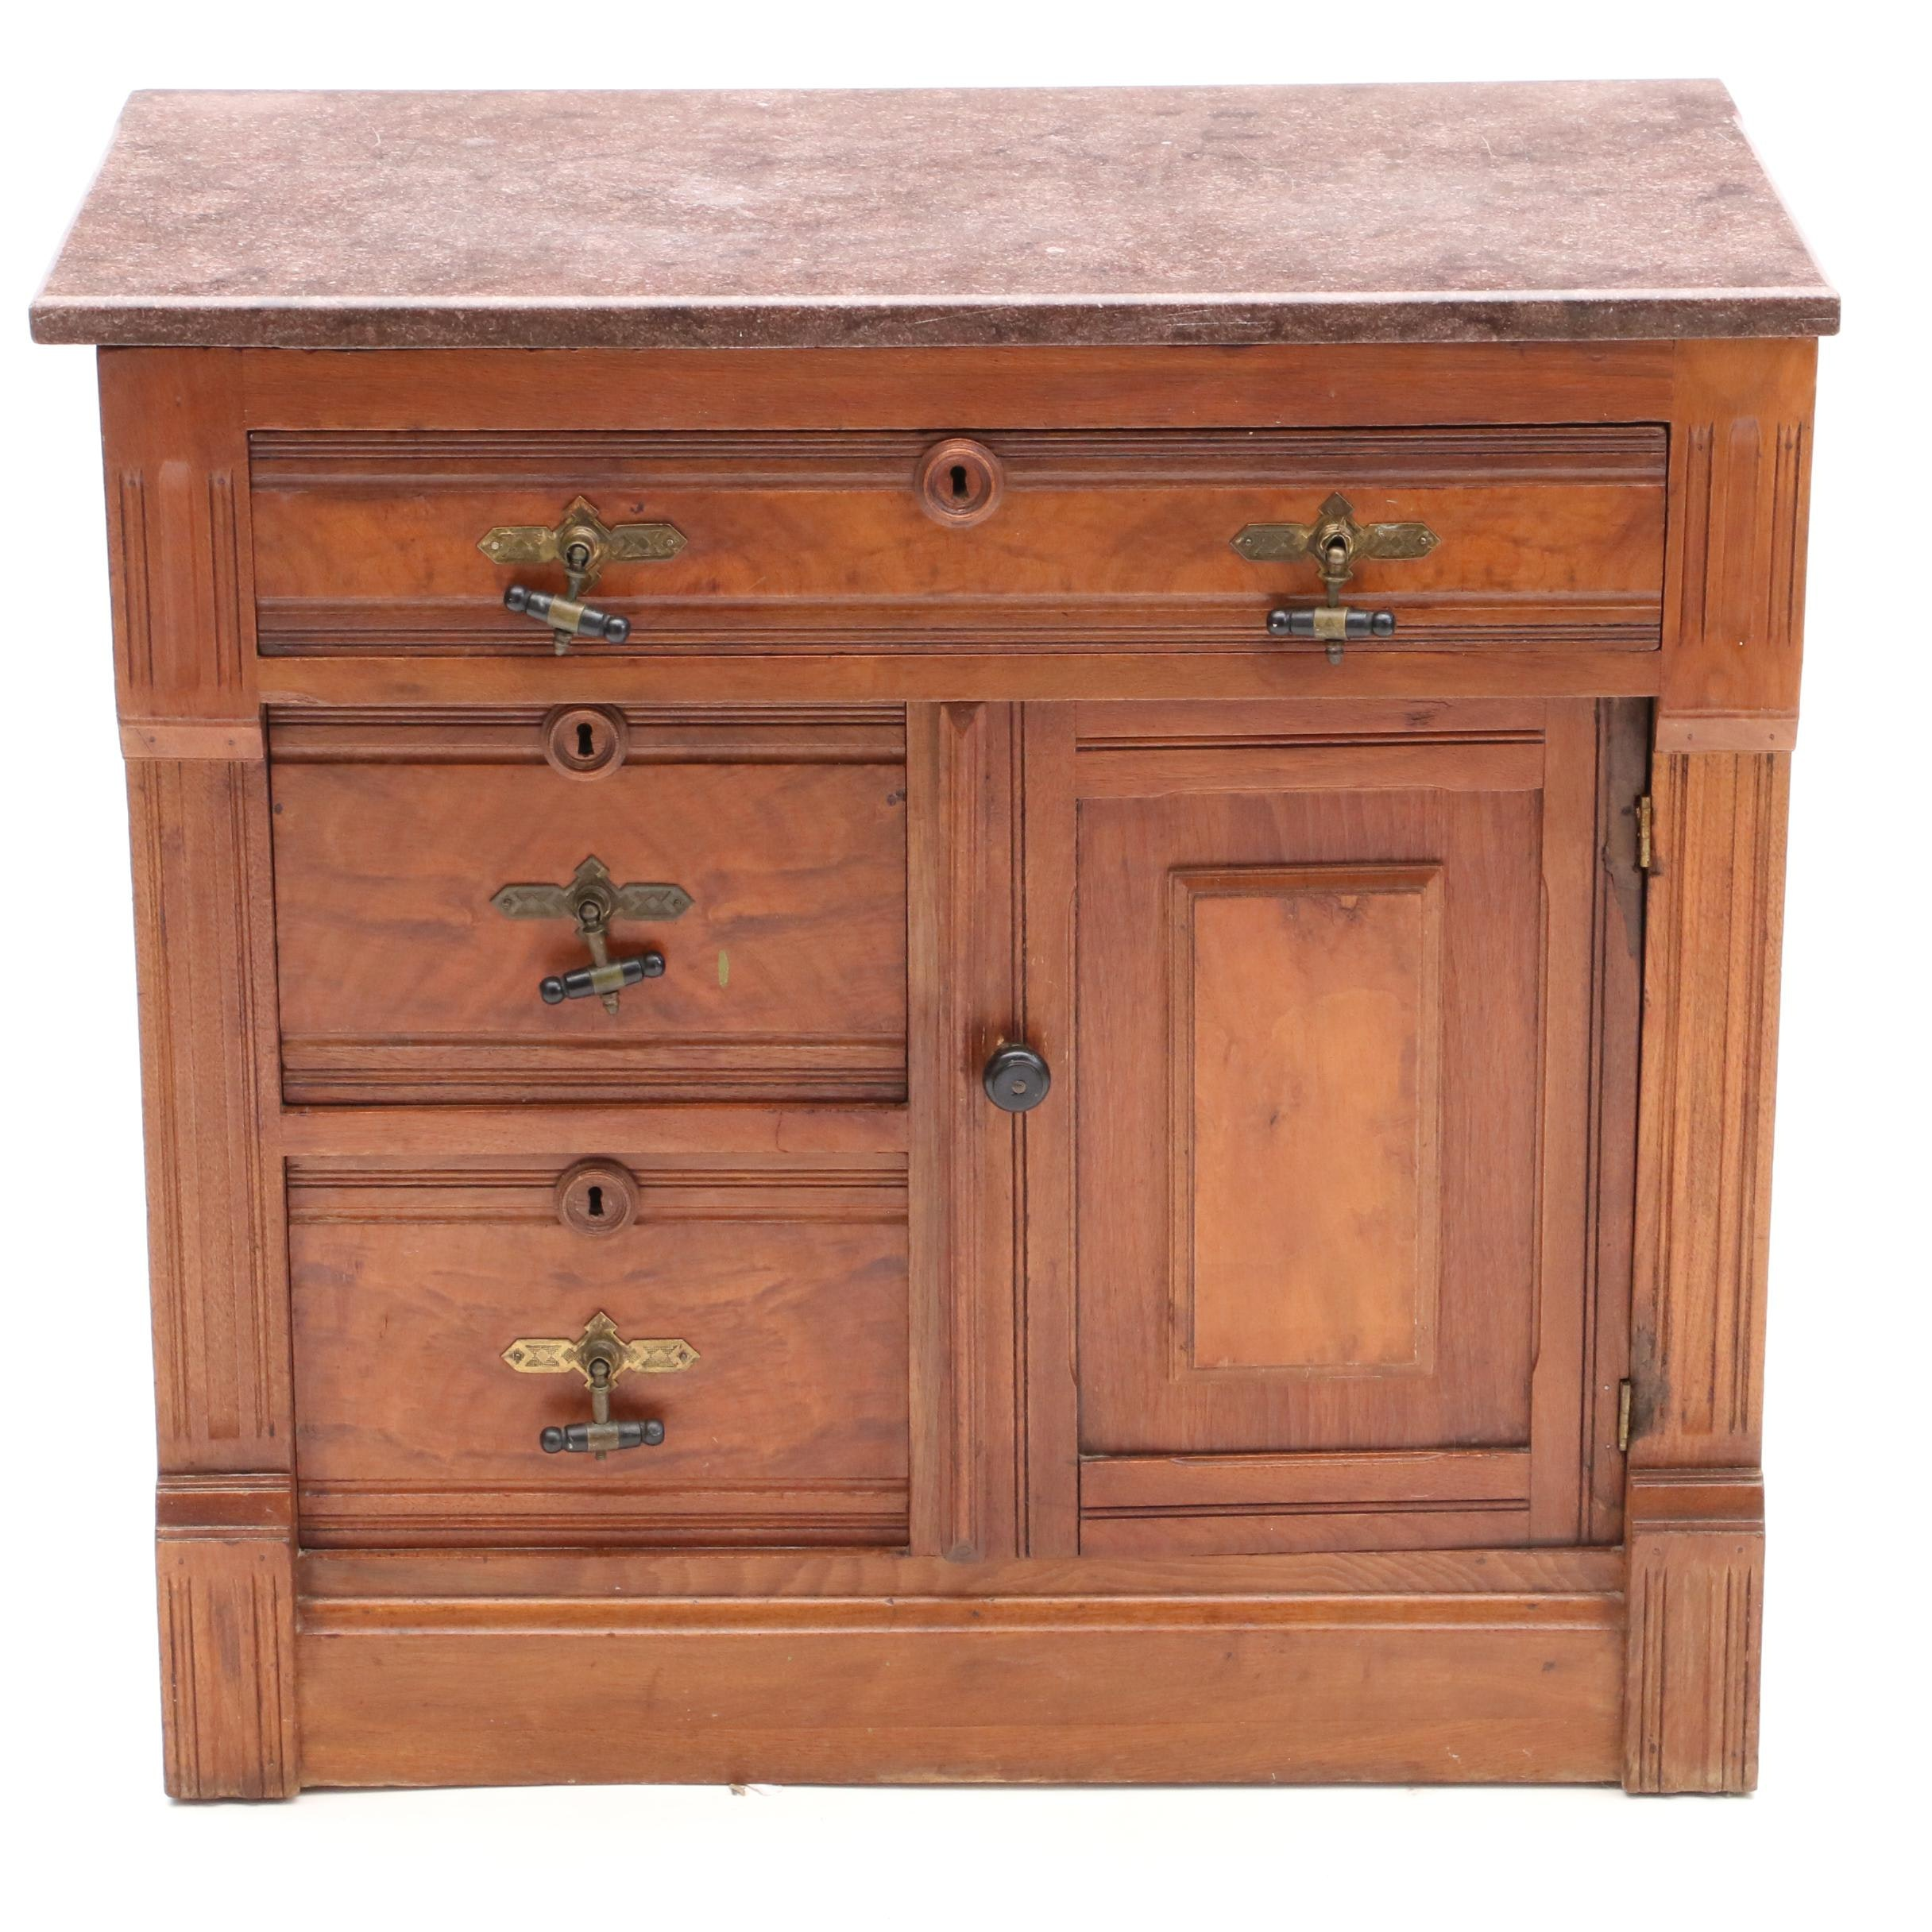 Late Victorian Wash Stand